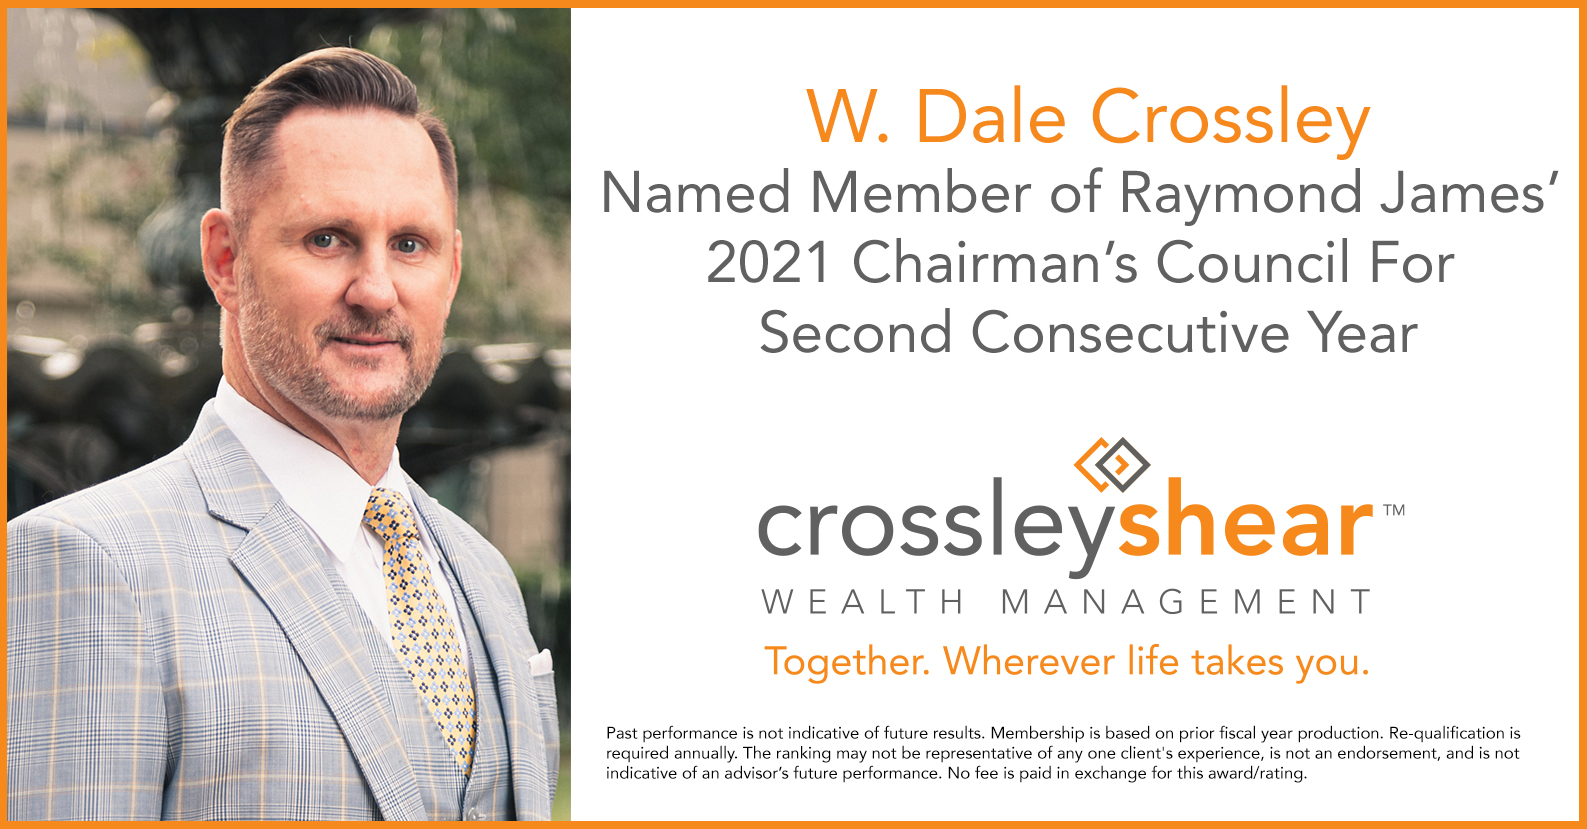 W. Dale Crossley Named Member of Raymond James' 2021 Chairman's Council for 2nd Consecutive Year